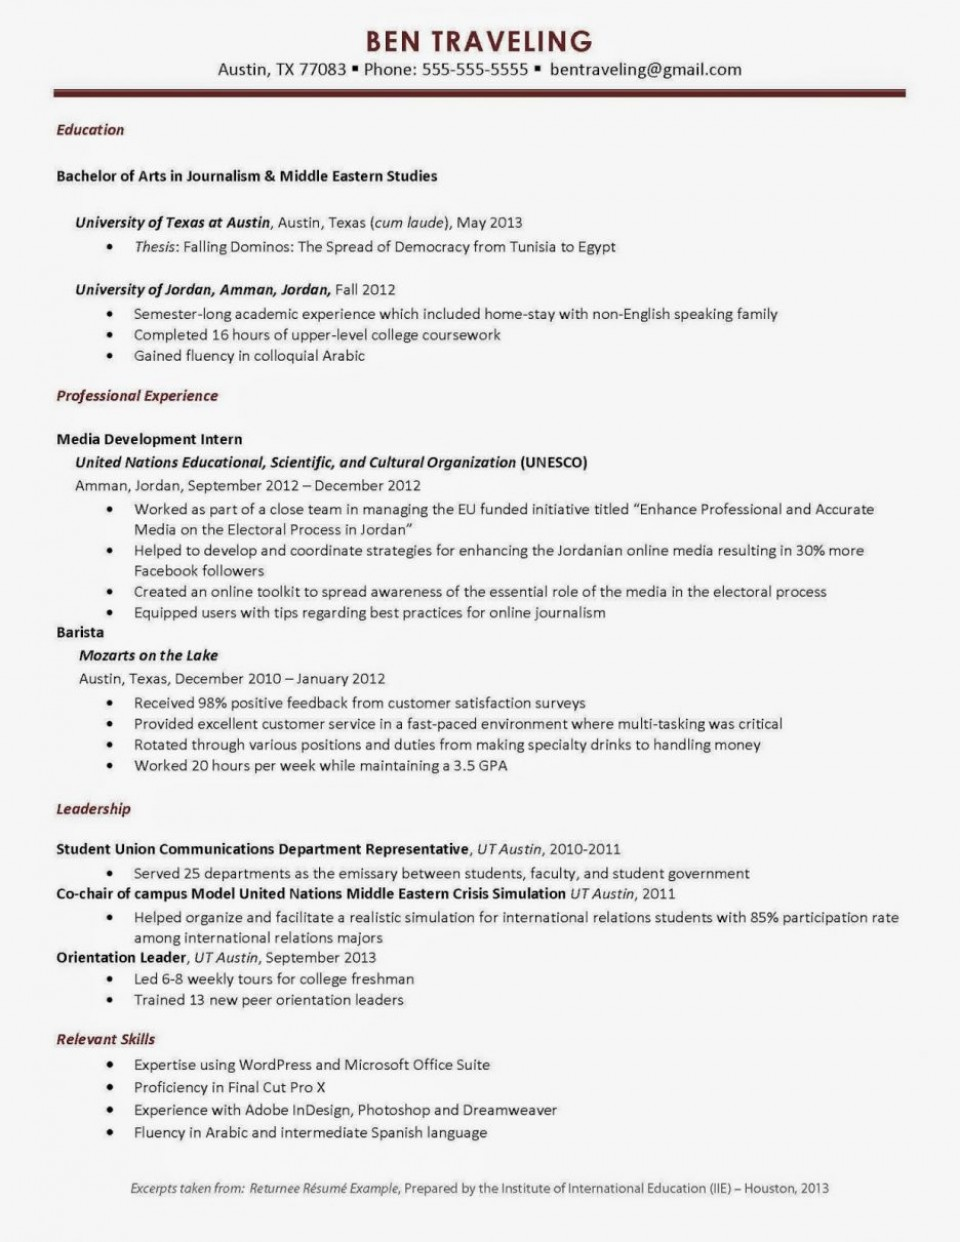 018 Study Abroad Essay Example Morethantravelworkshop Resume Personal Sample Scholarship Examples Why Do You Want To Application Top Samples I 960